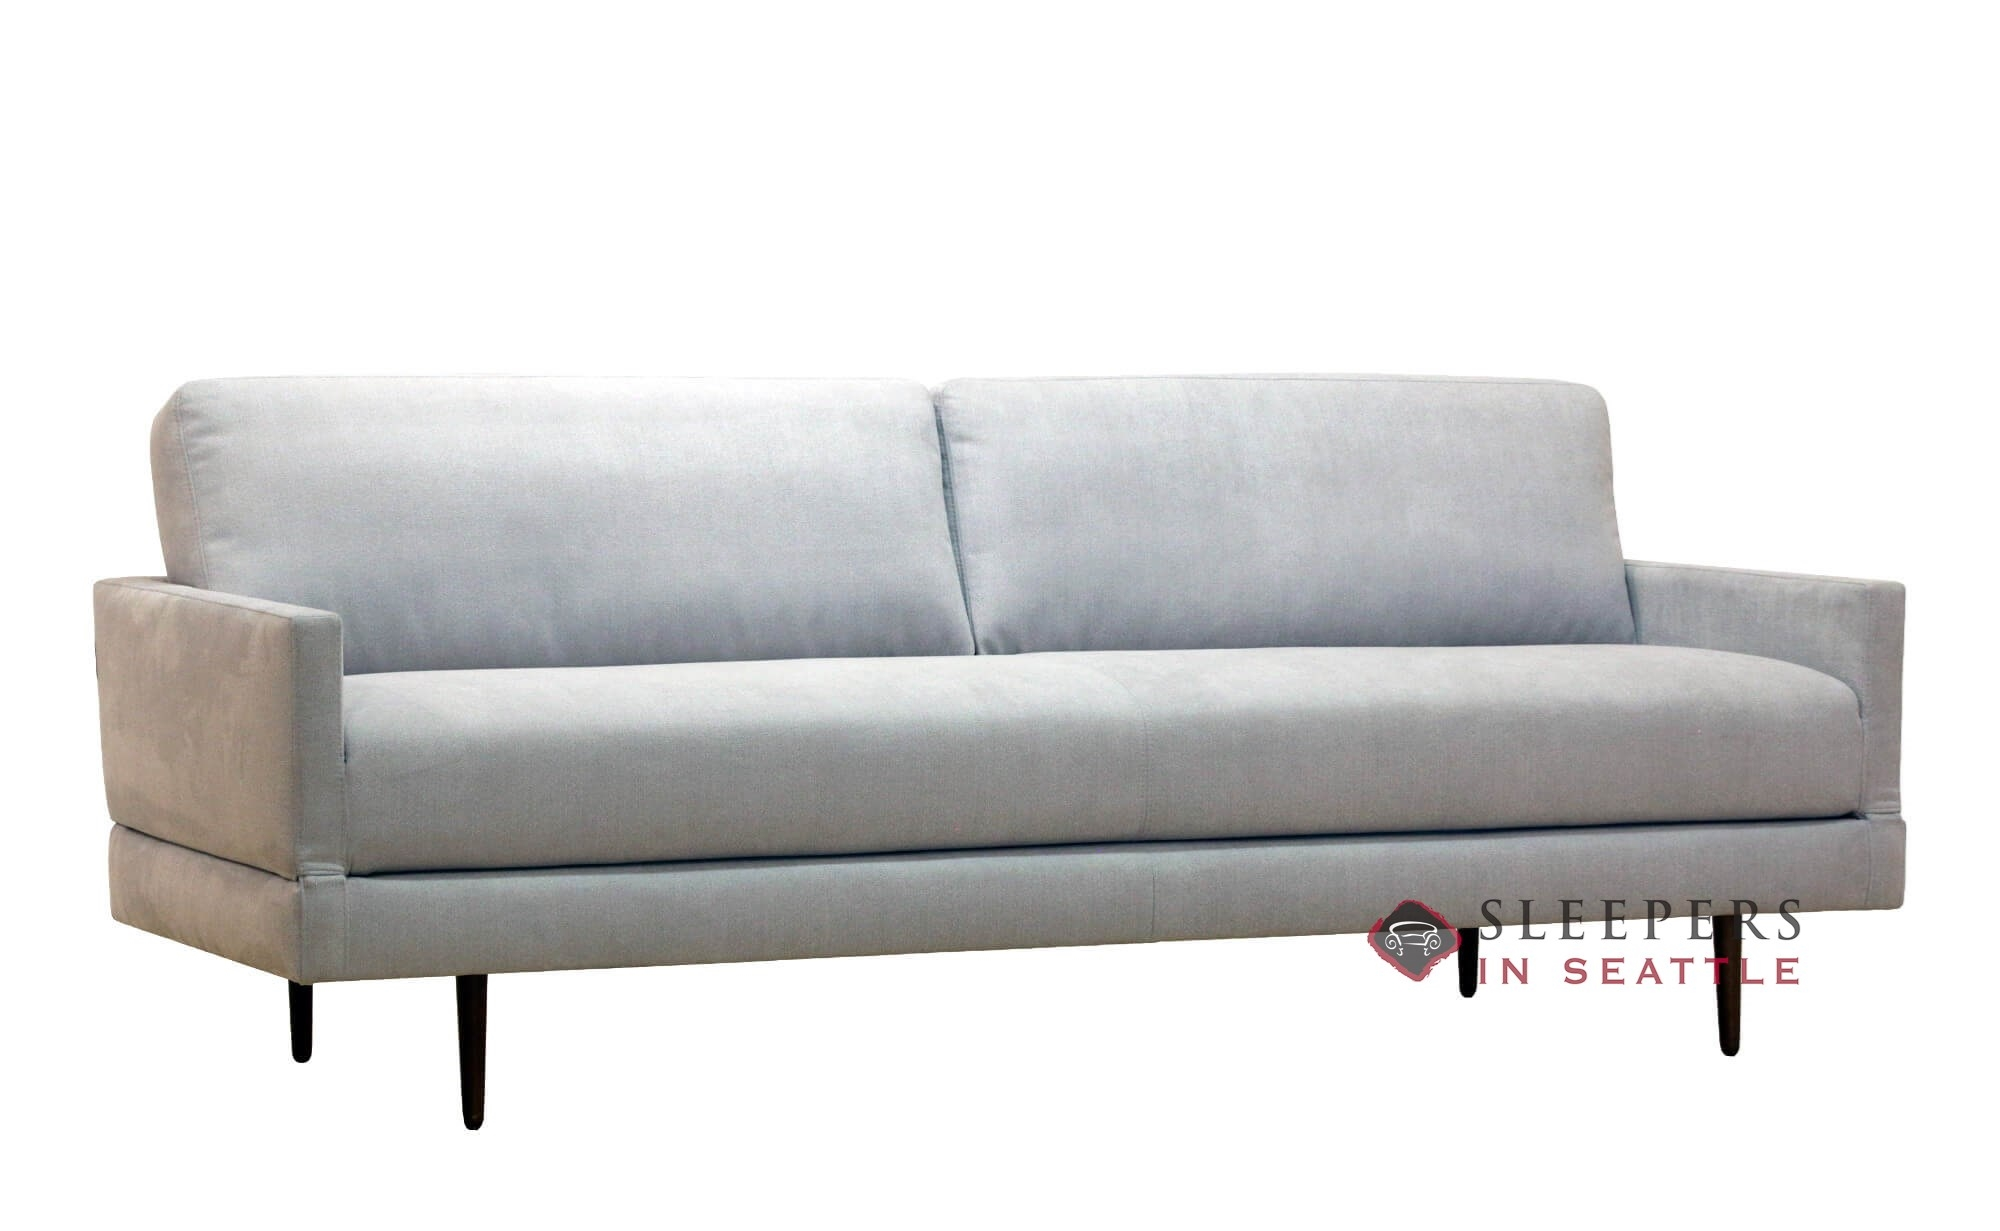 pottery barn deluxe sleeper sofa reviews large leather reclining sectional full sofas beds and